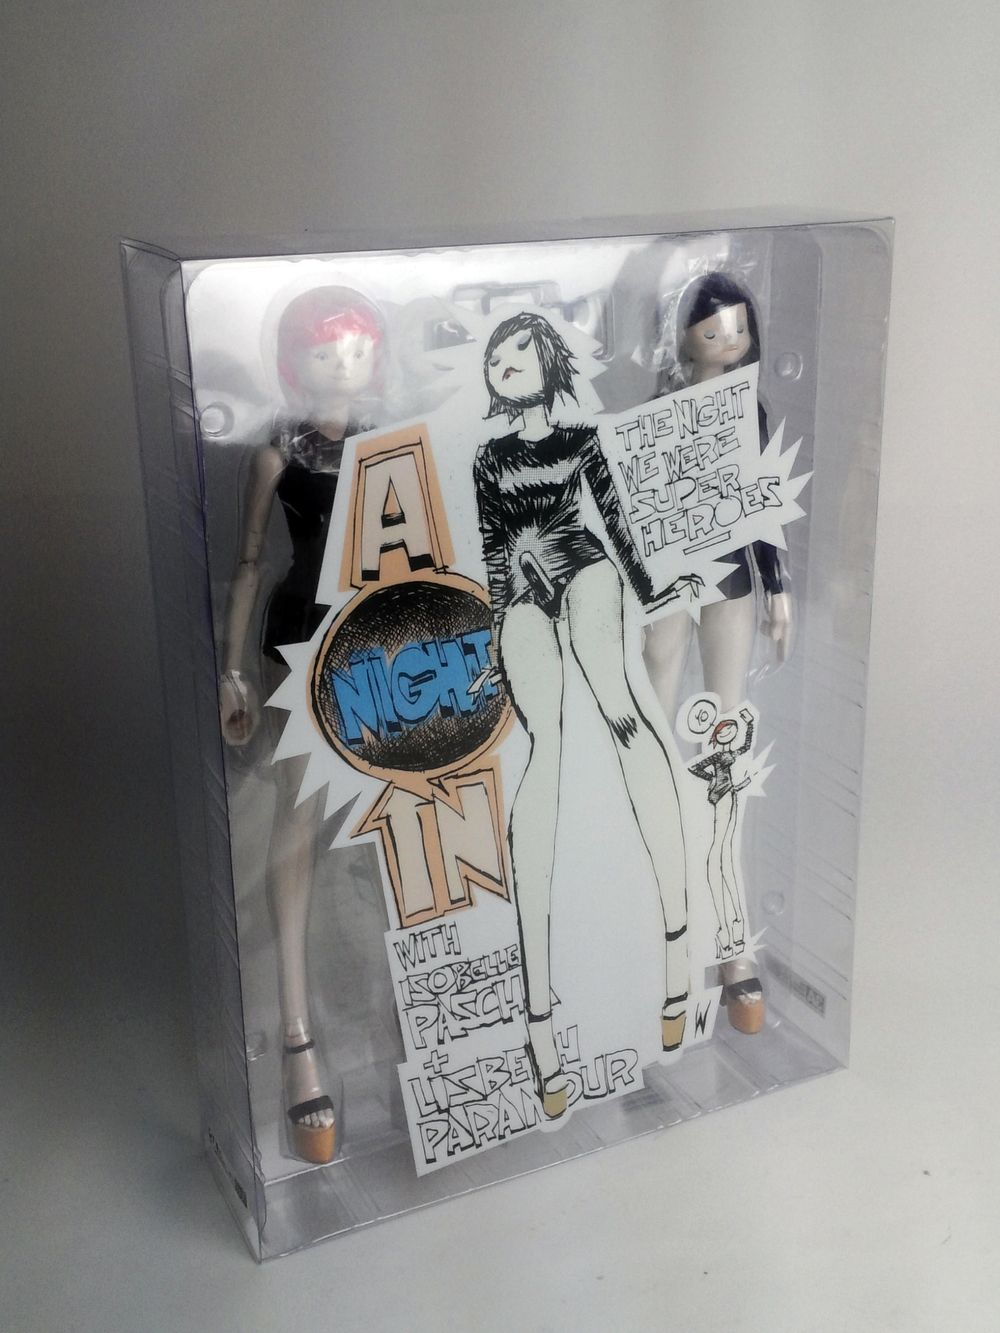 A Quiet Night In With Isobelle Pascha Lizbeth Paramour 3aa Exclusive 2 Pack Is Shipping Out Soon Threea Ashley Art Toys Design Designer Toys Vinyl Art Toy